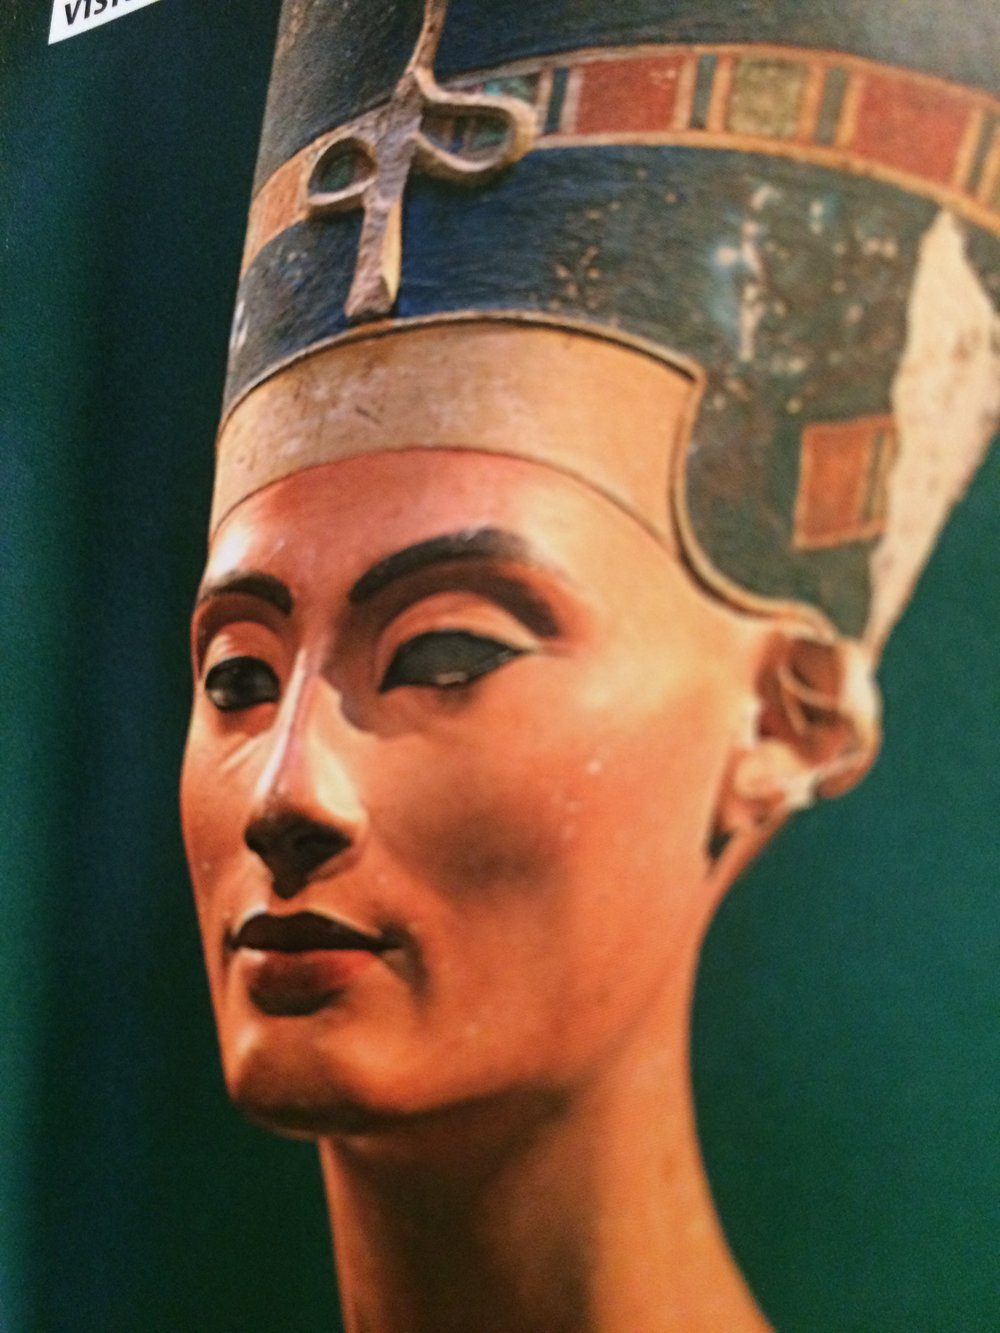 Queen Nerfertiti